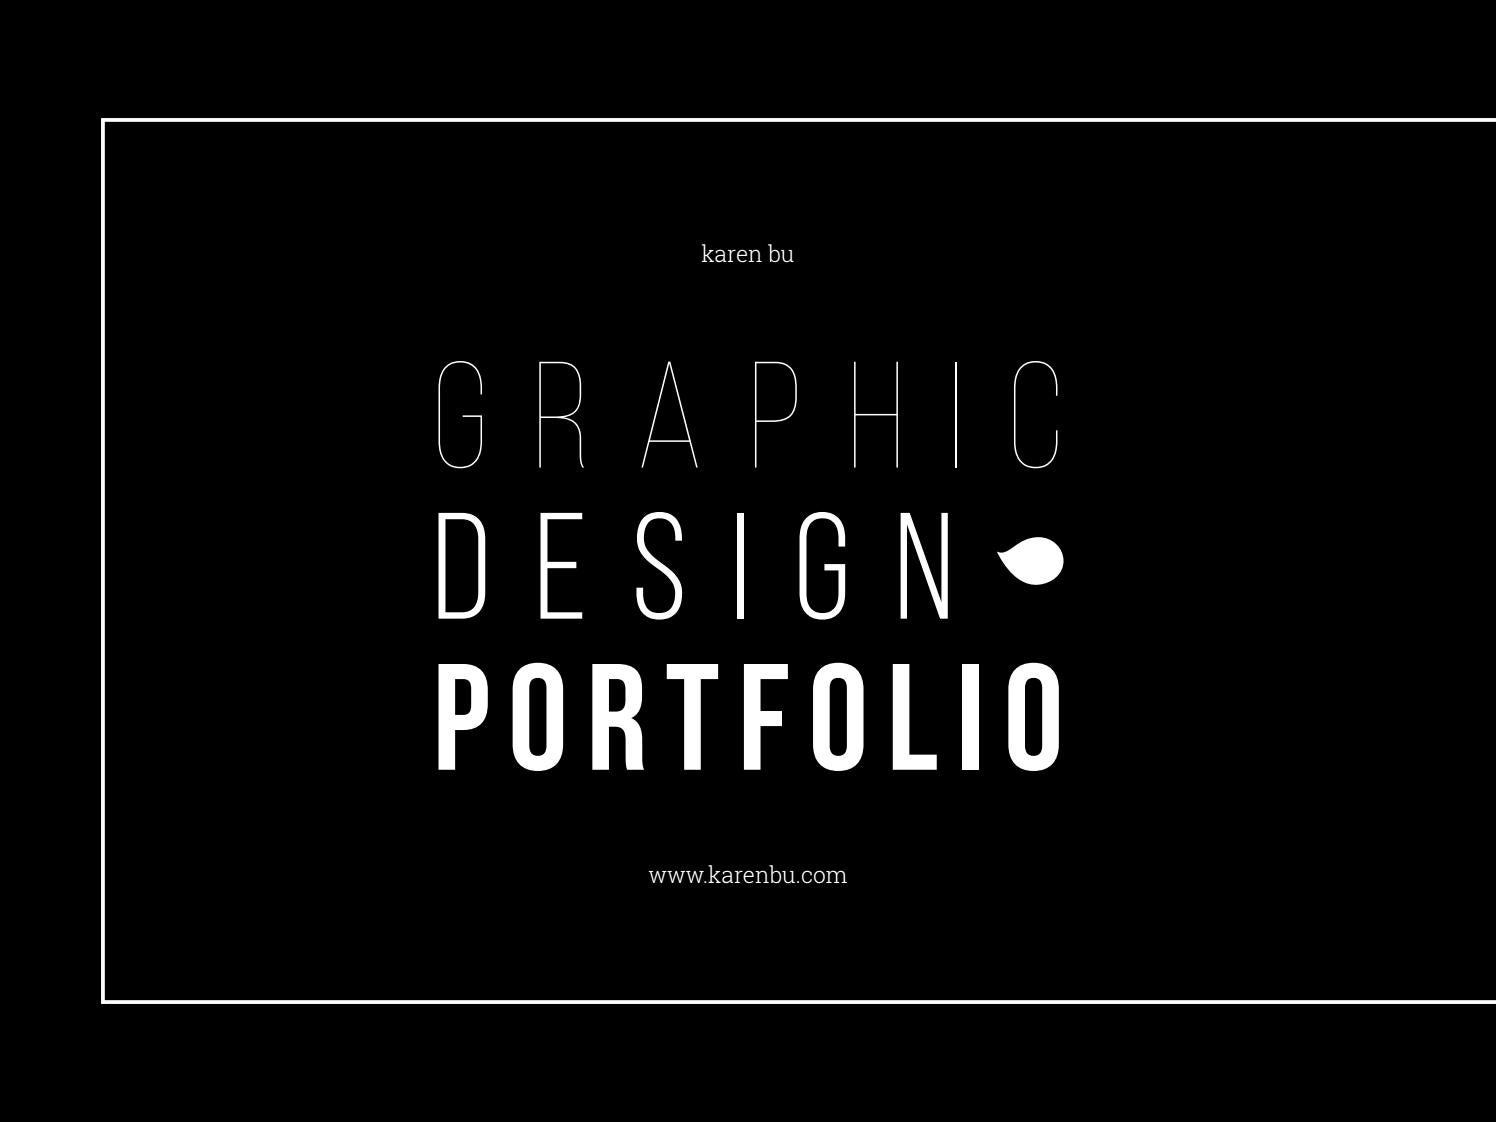 Berühmt Graphic Design Portfolio - August 2016 by Karen Bu - issuu &NB_51